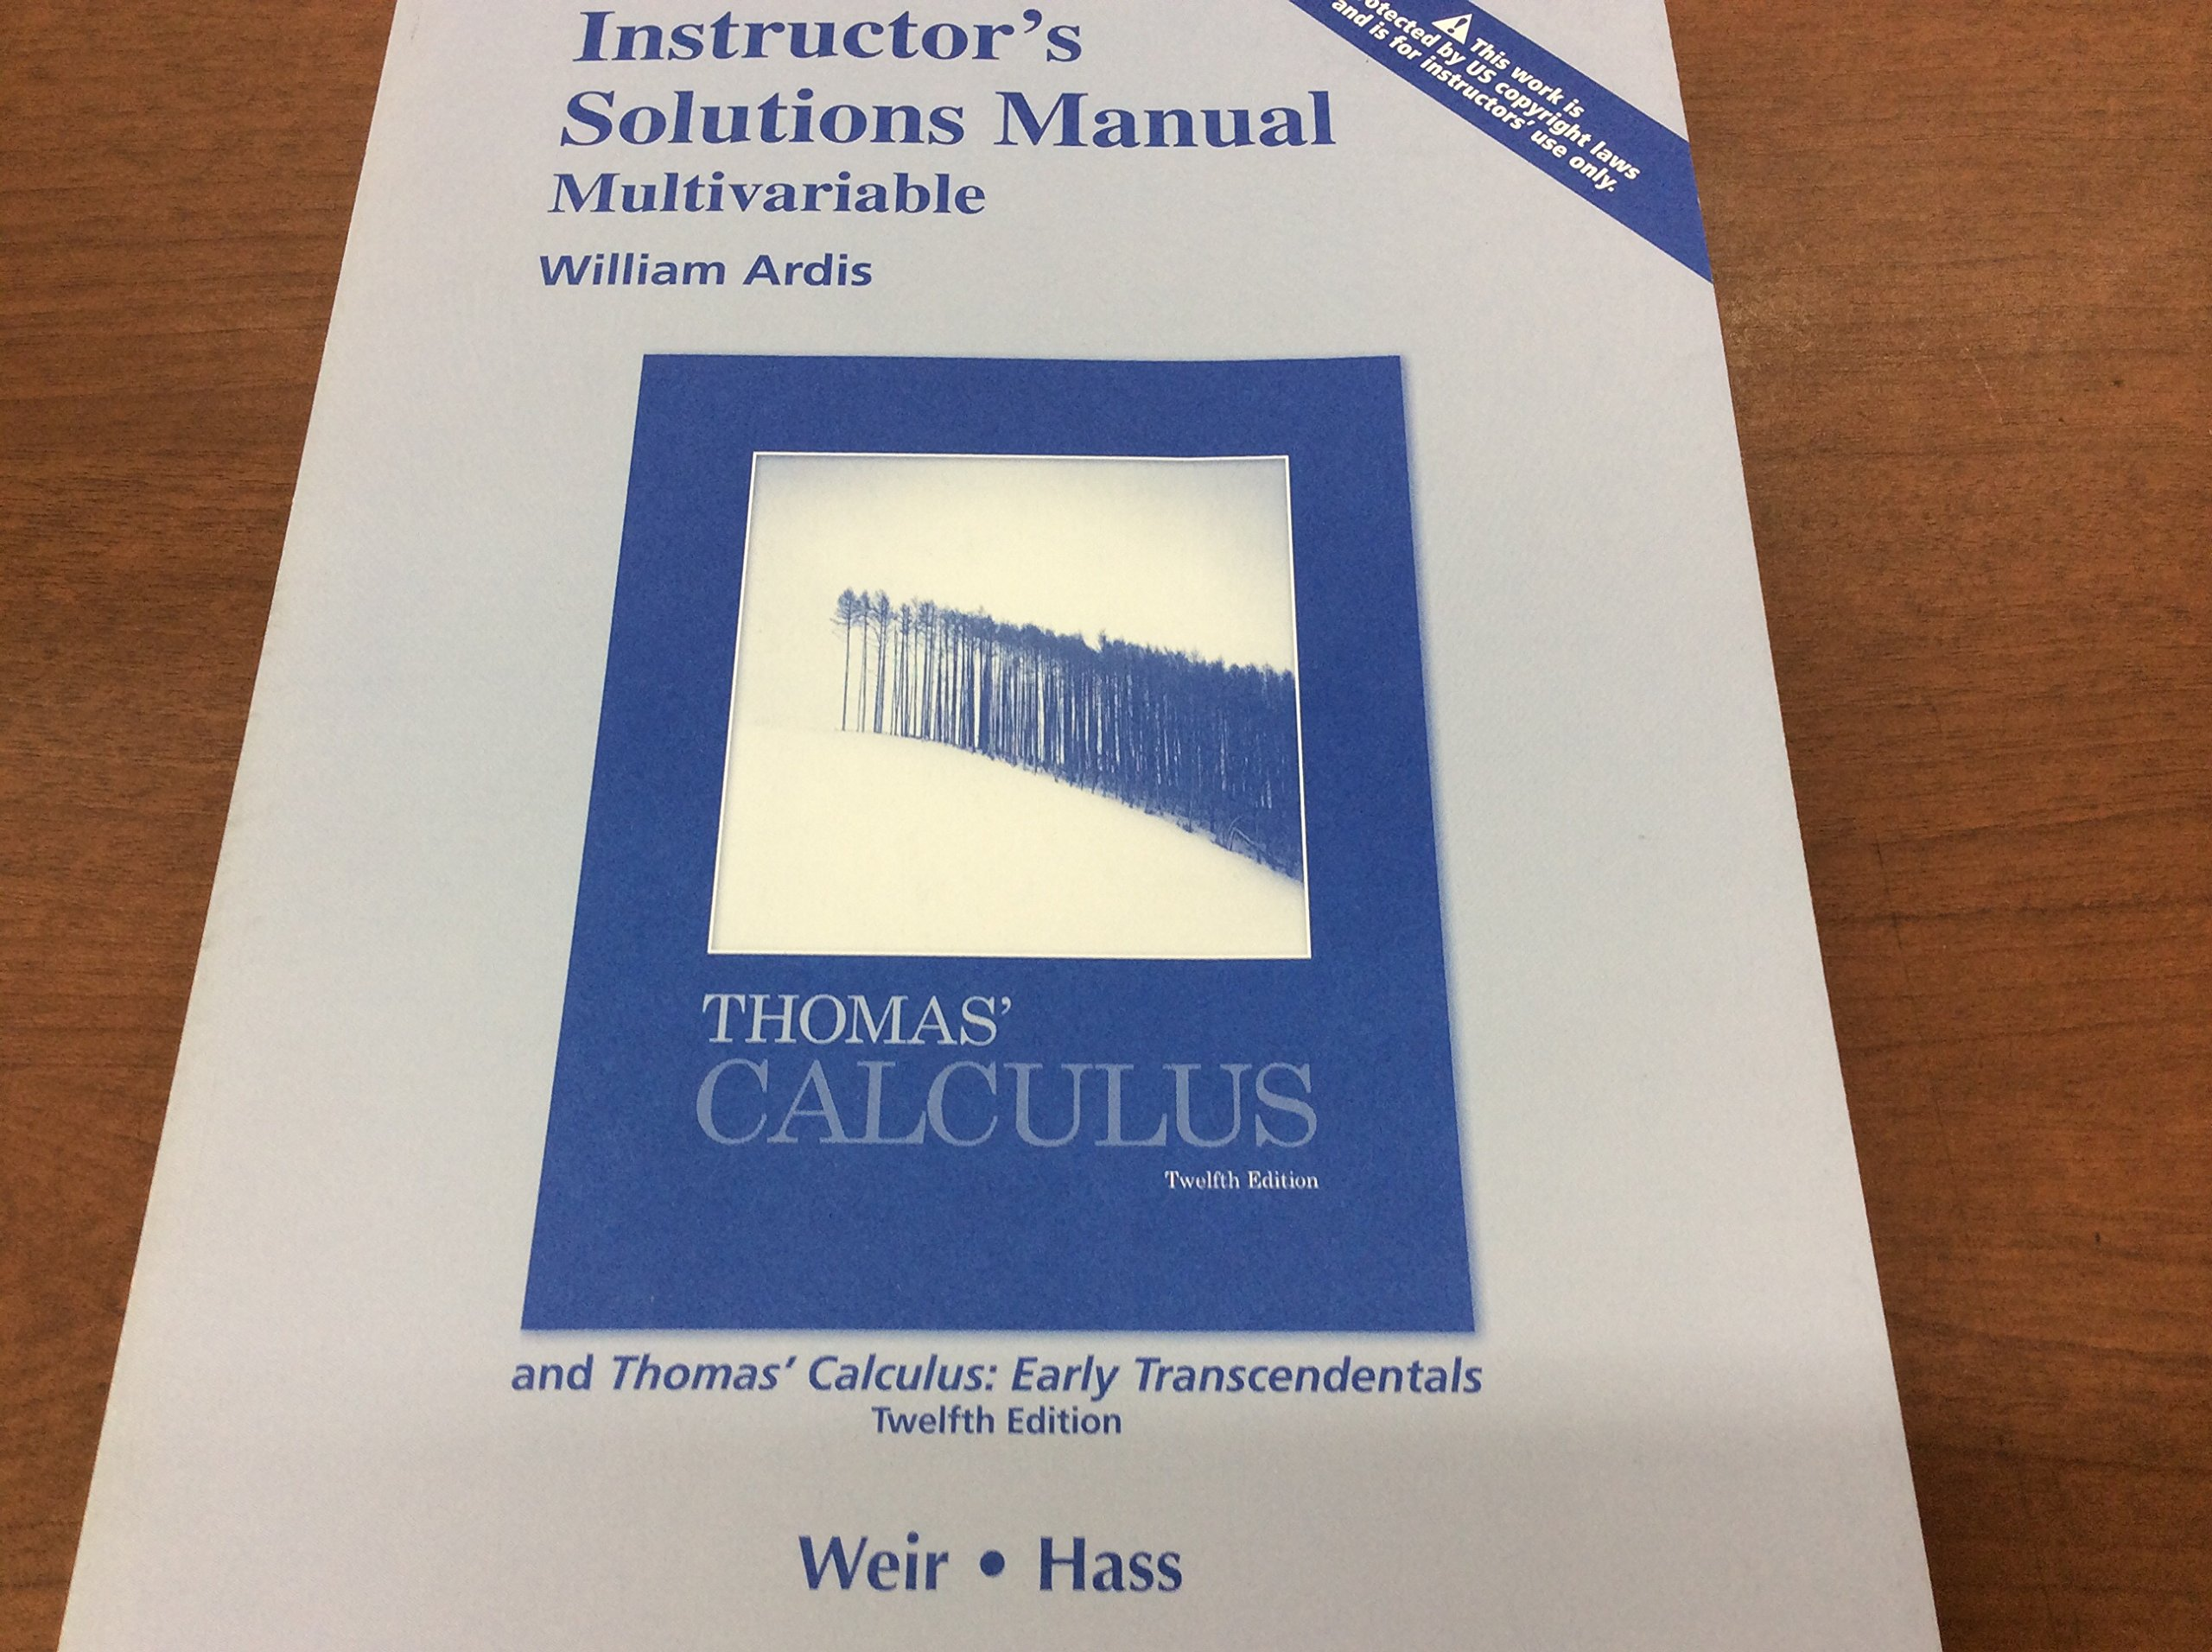 Instructor' solutions manual, multivariable for Thomas' calculus & Thomas' calculus  early transcendental a, 12/E: Weir-Hass: 9780321600721: Amazon.com: ...